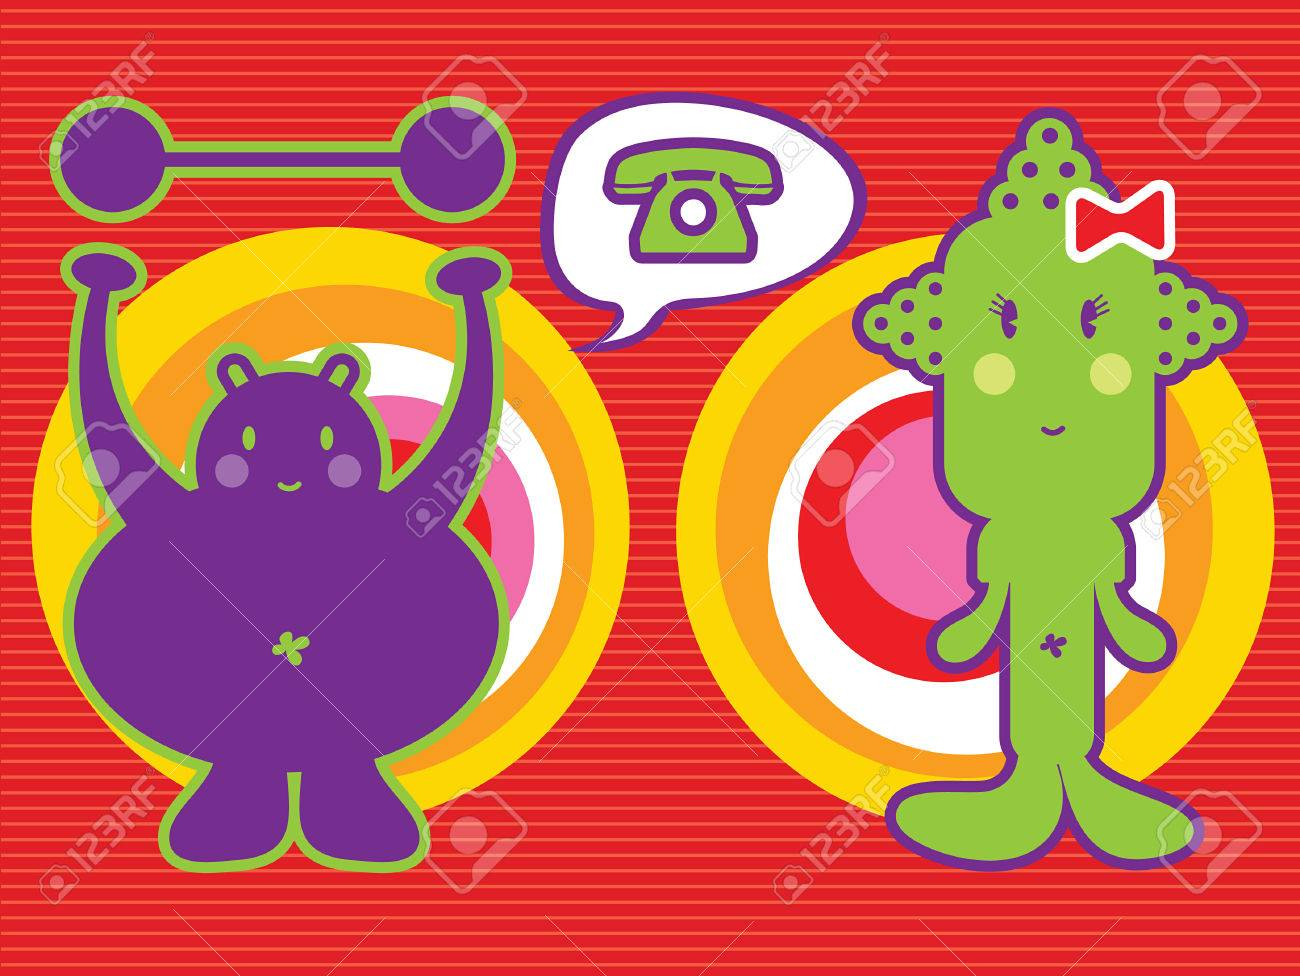 ms skinny and mr. fat (vector) - illustrated cartoon character icon Stock Vector - 1415334